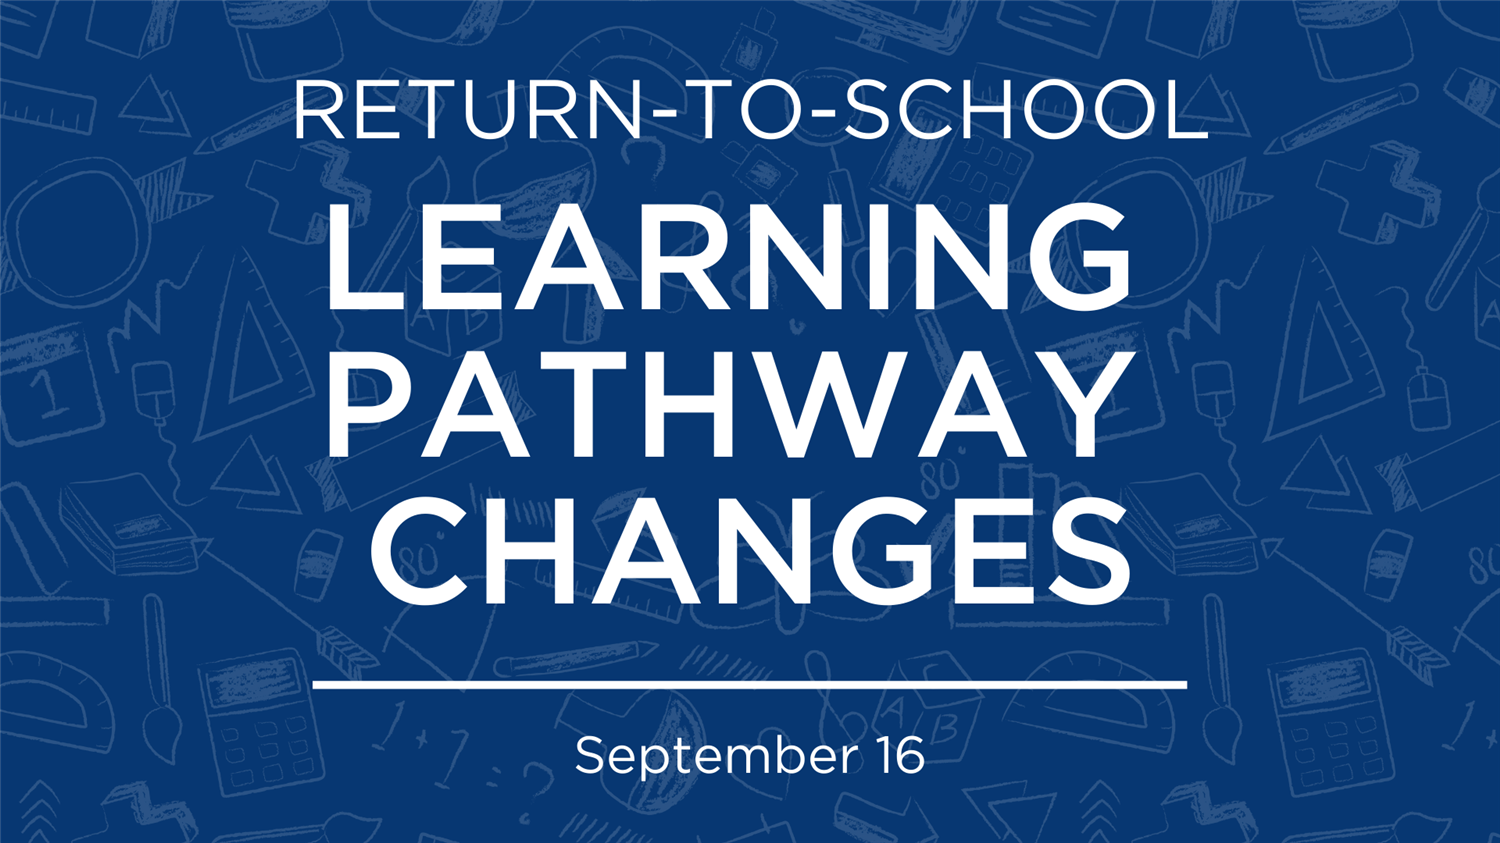 Learning Pathway Change Form | Sept. 16